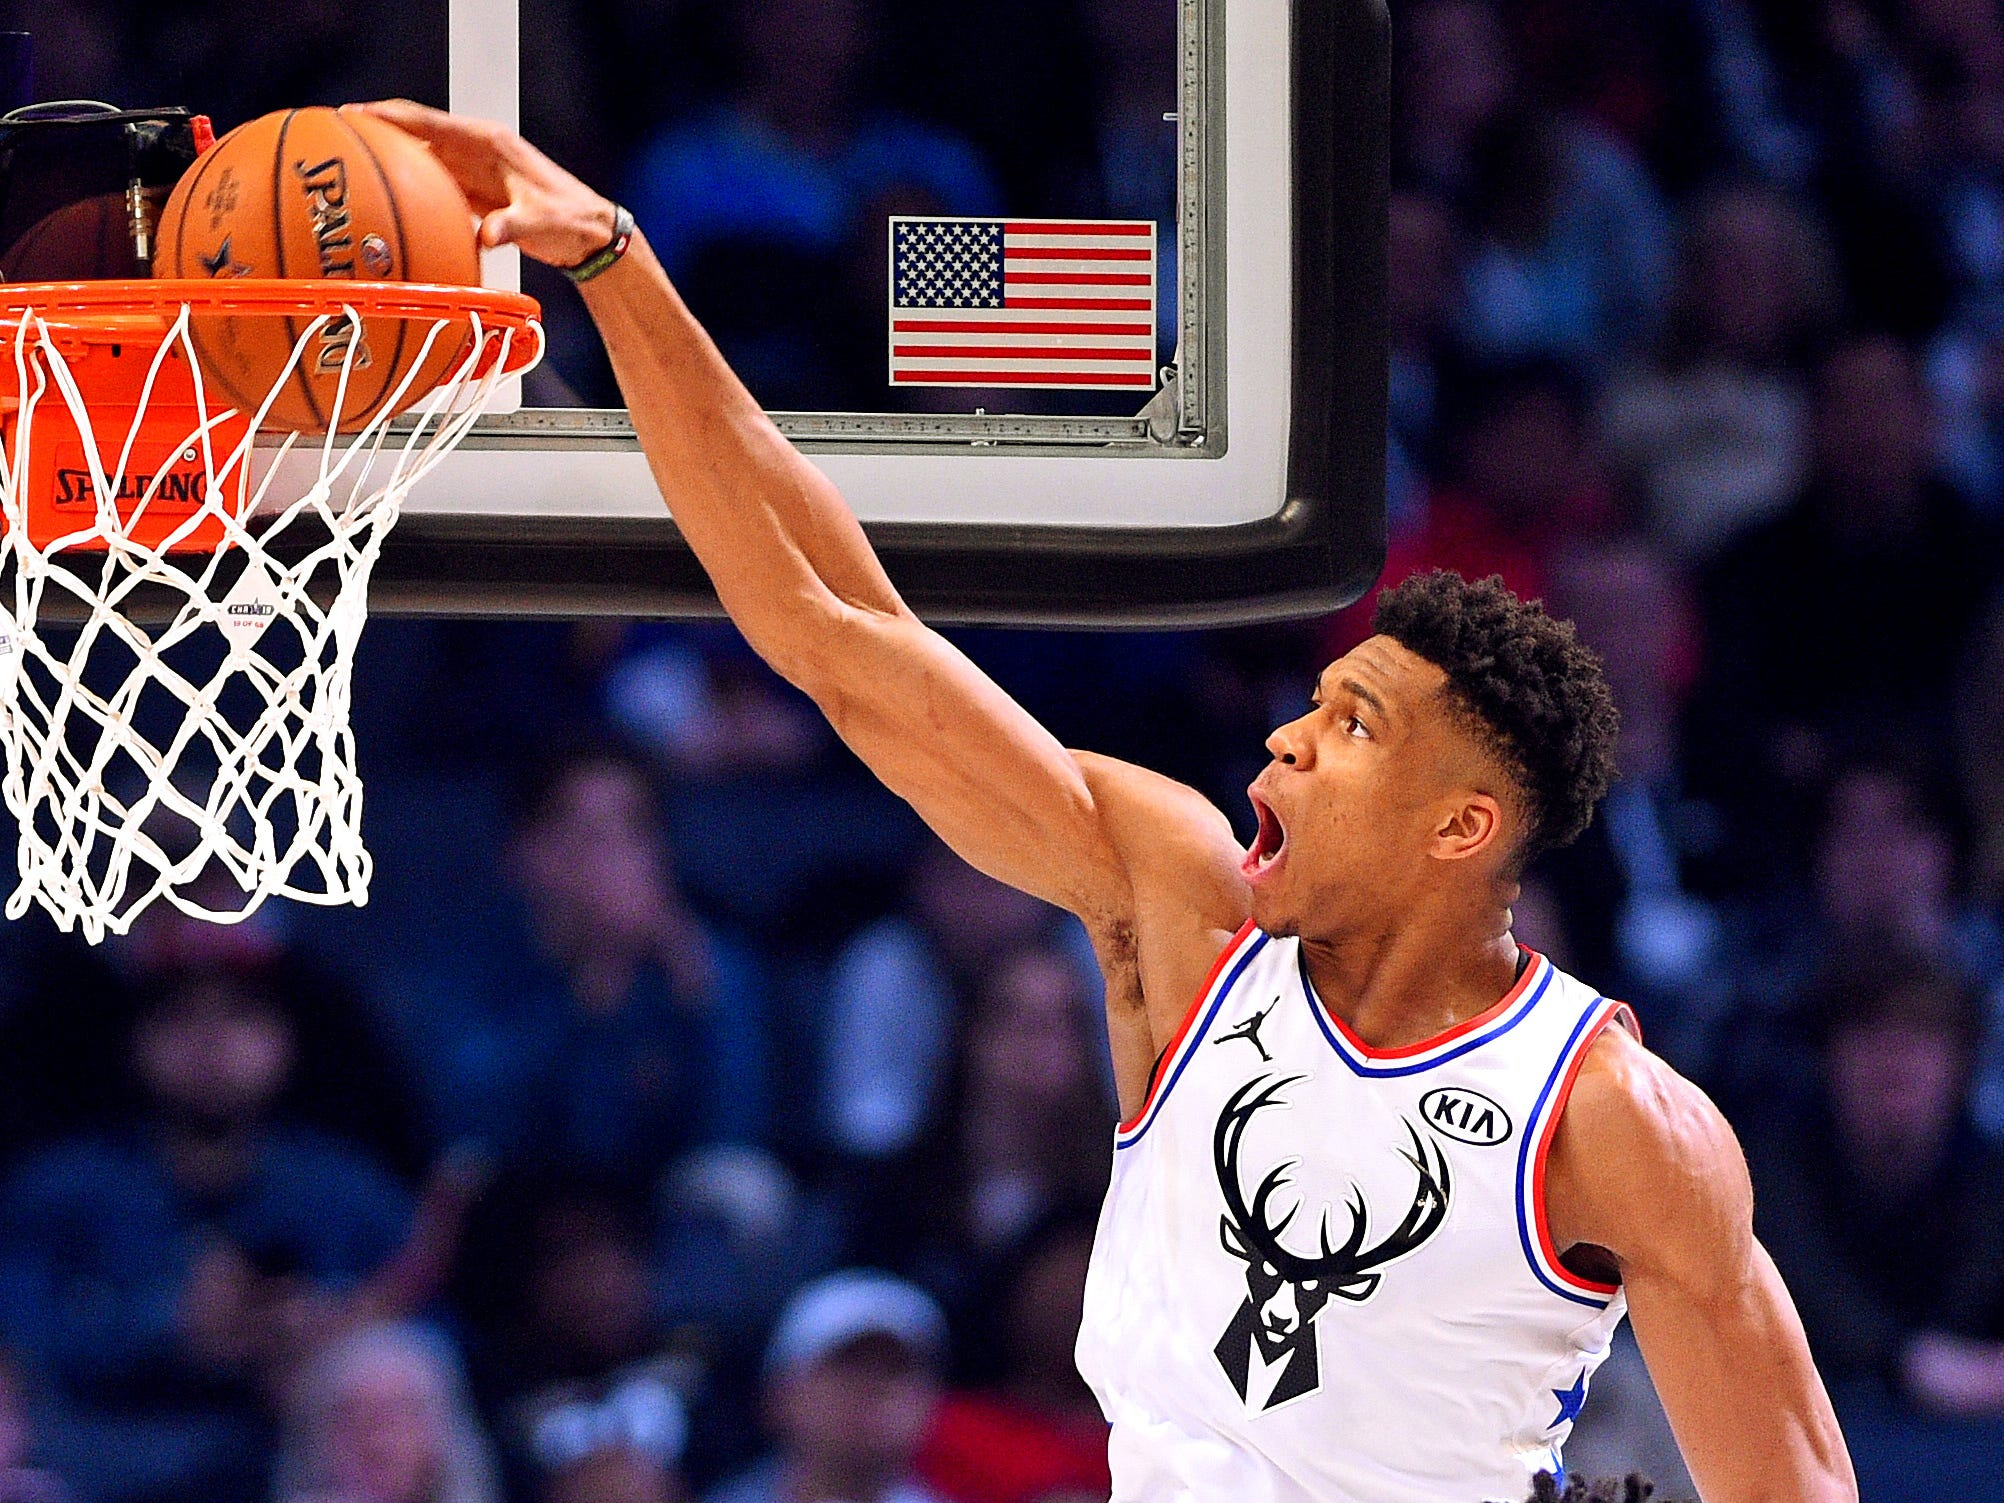 Giannis Antetokounmpo throws down a dunk during the All-Star Game.